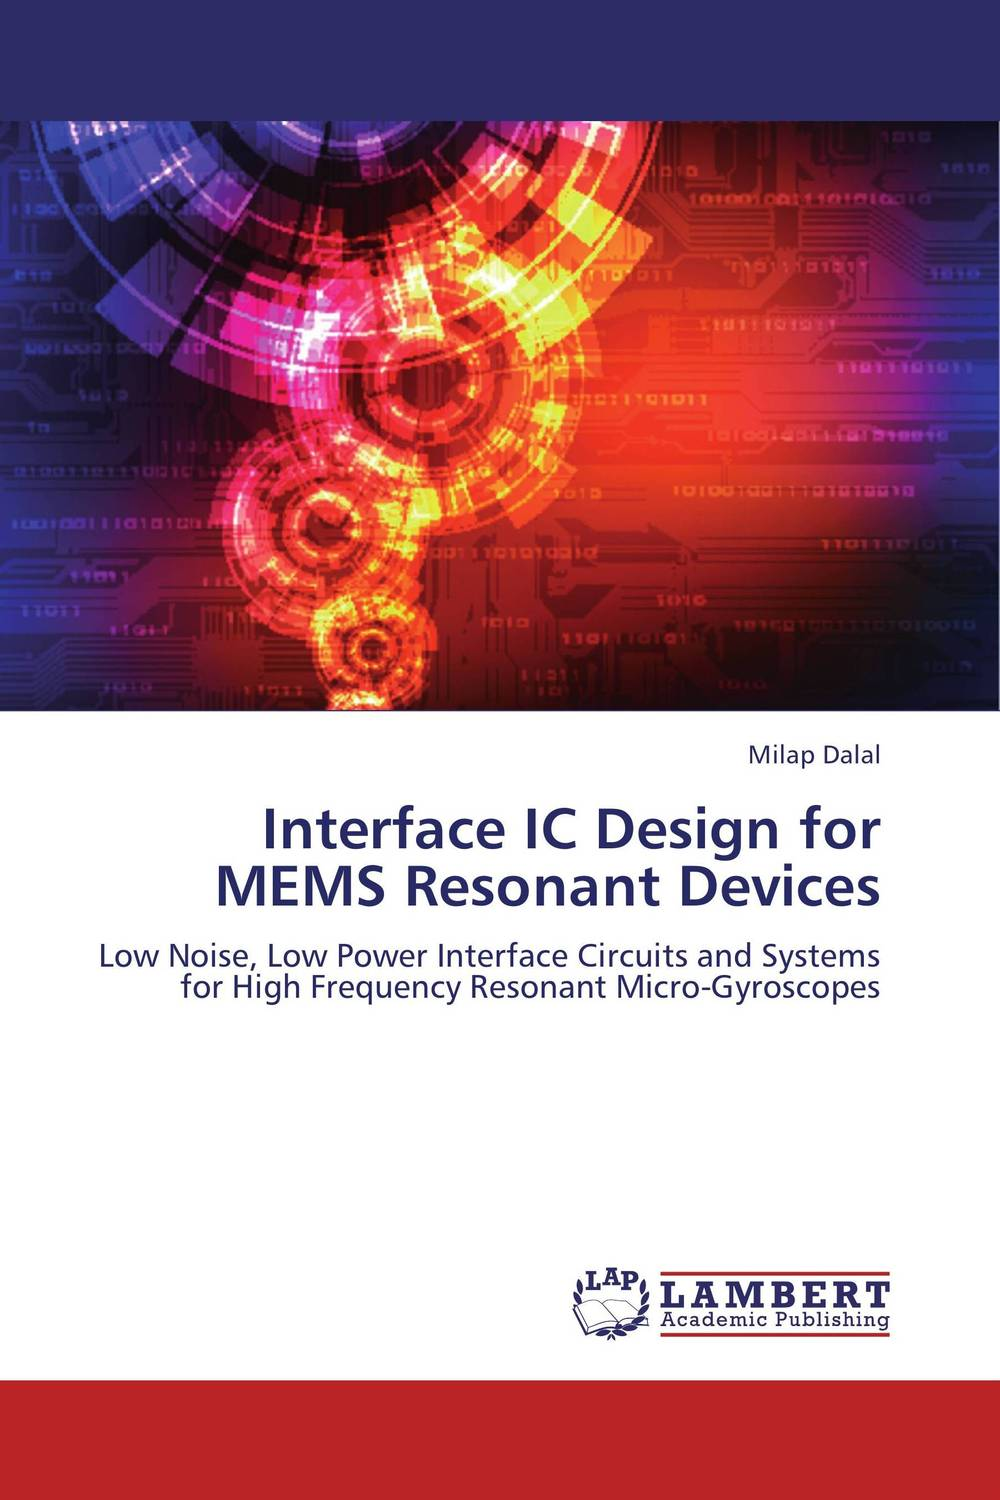 Interface IC Design for MEMS Resonant Devices minhang bao analysis and design principles of mems devices